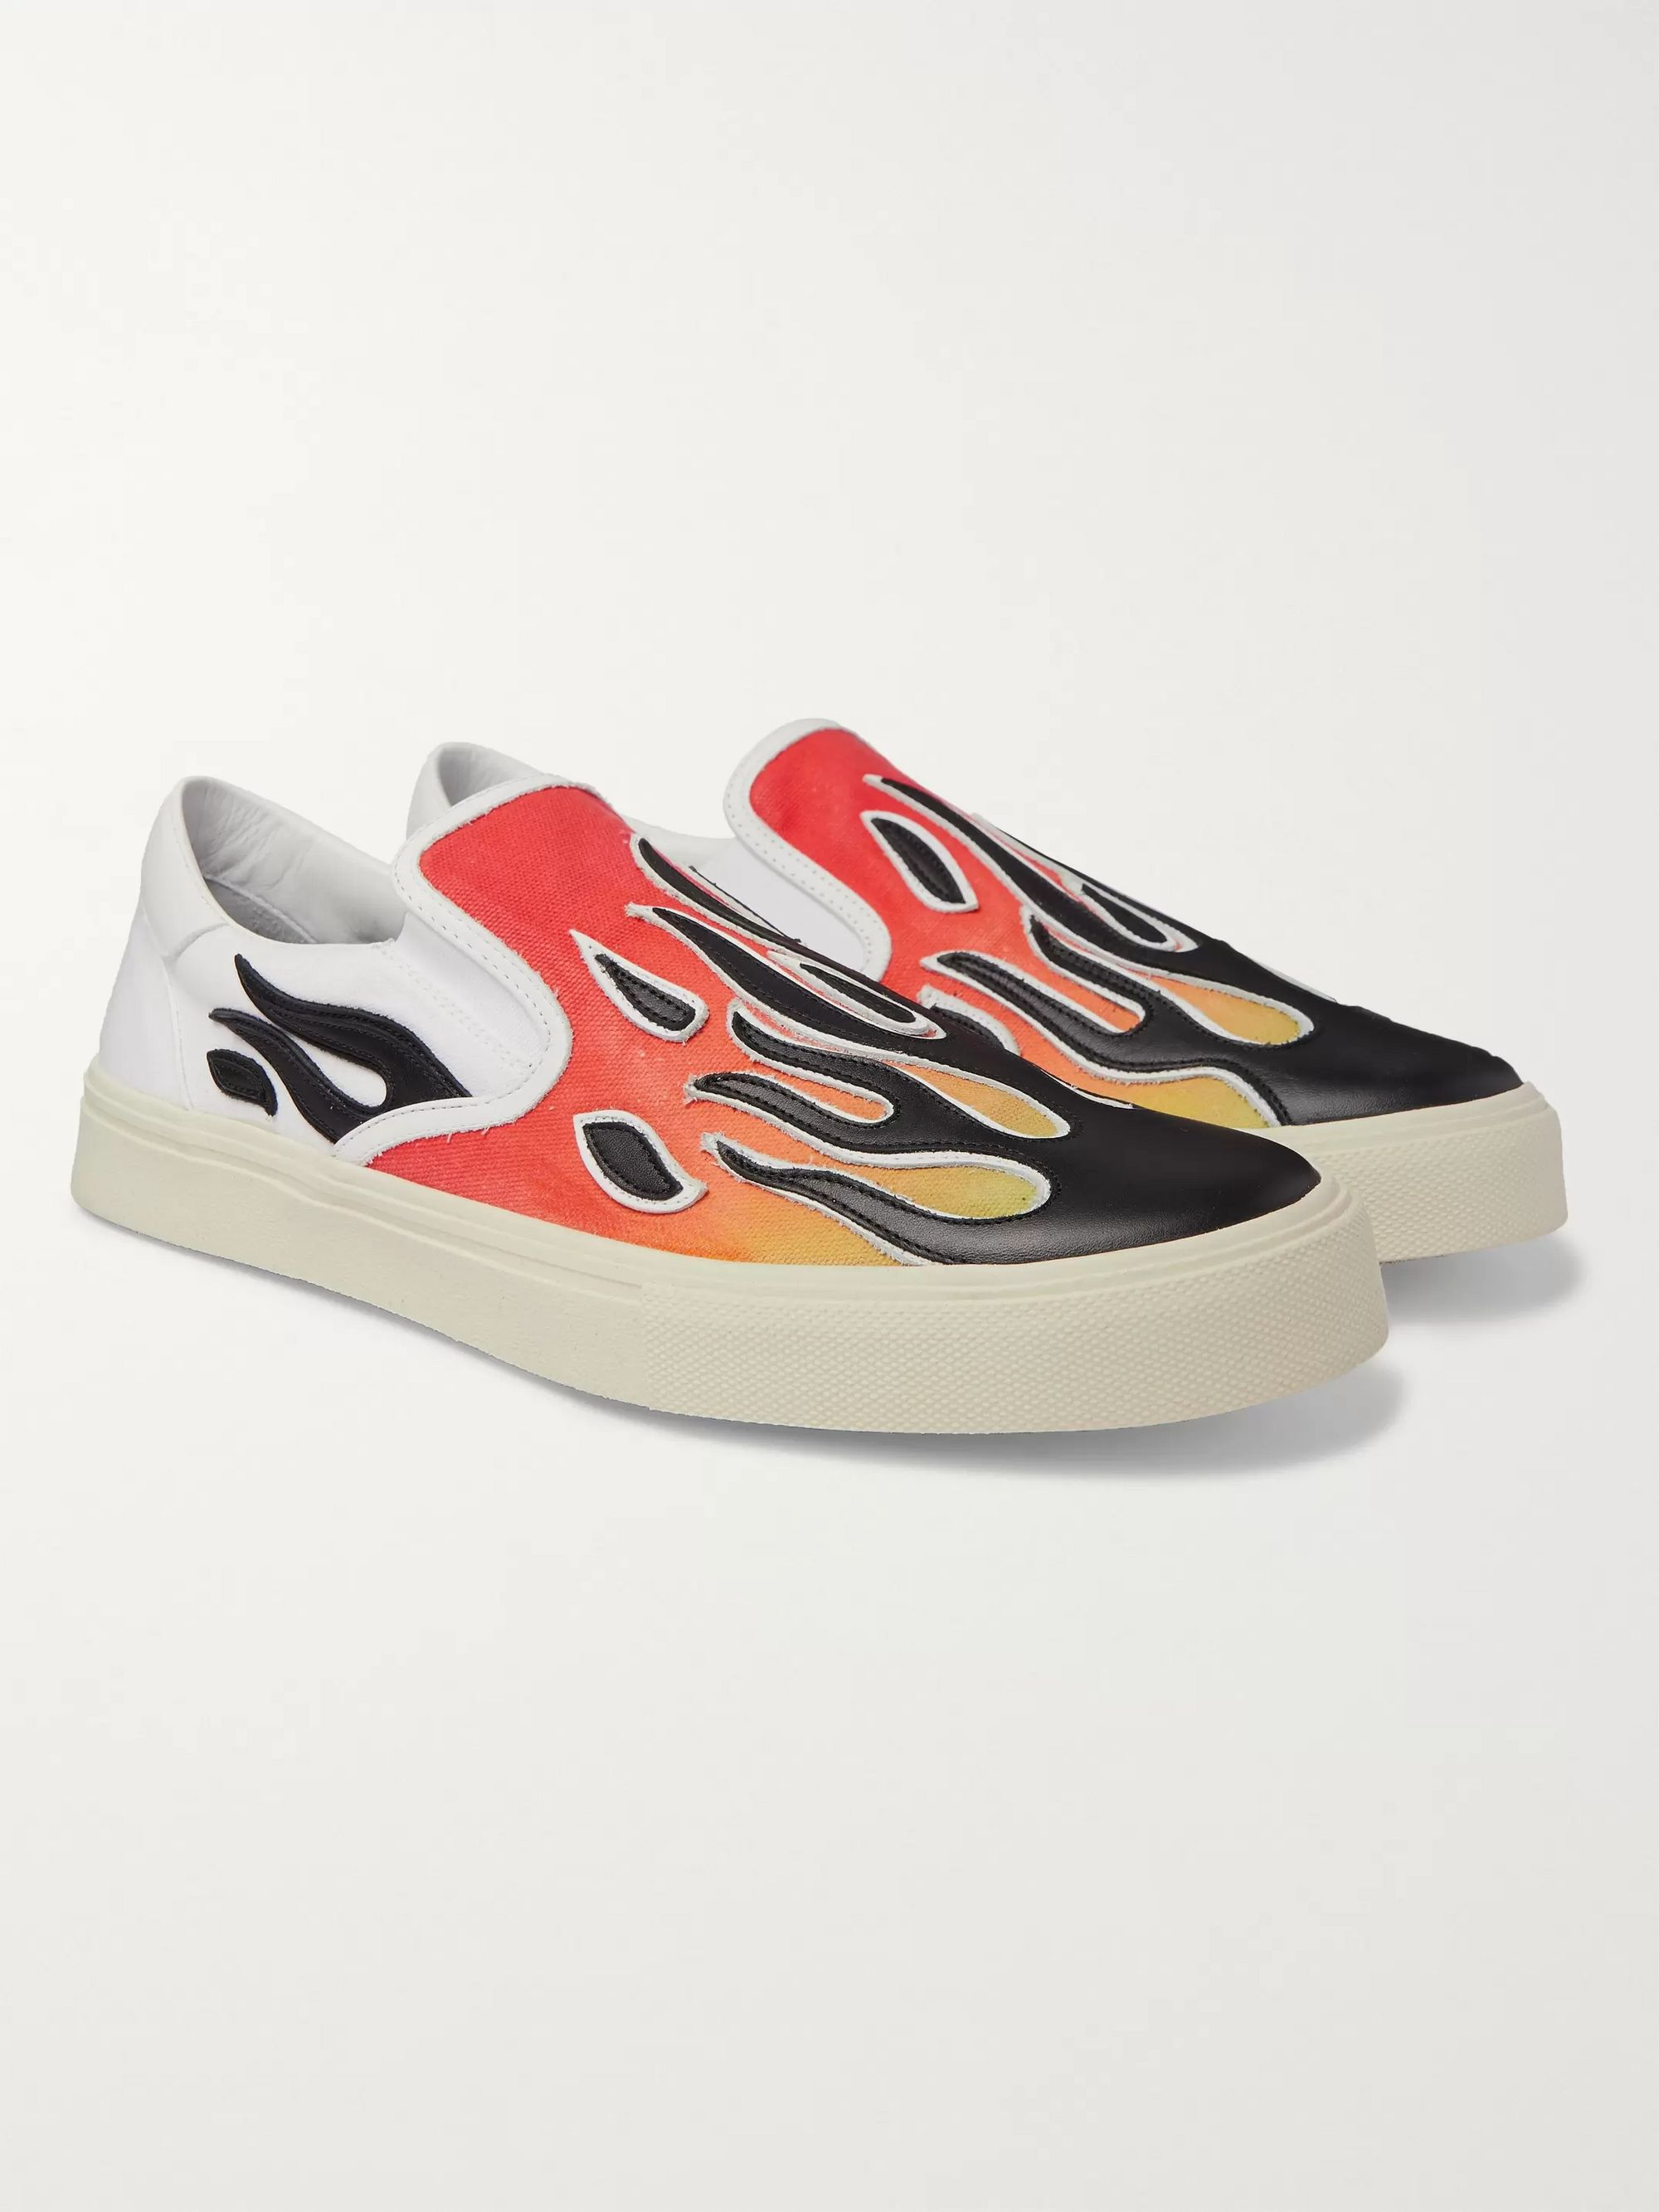 AMIRI Flame Leather-Appliquéd Canvas Slip-On Sneakers